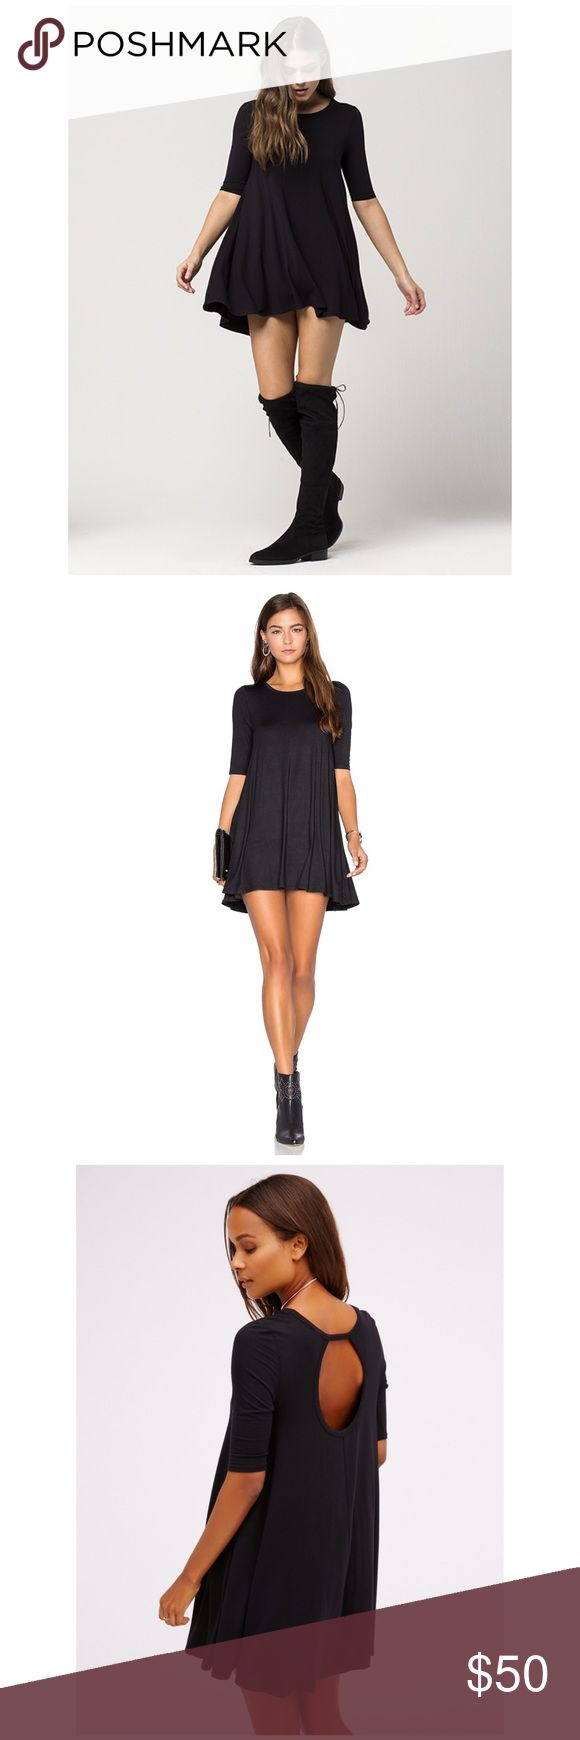 "Free People Black Tunic Free People Jacqueline tunic. A classic black tunic dress in a soft jersey knit. It features a wide crew neck with elbow sleeves. While demure in the front, the back has an open cutout for added flair. Approx length: 31"". 94% rayon/6% spandex. Hand wash. Free People Tops Tunics"